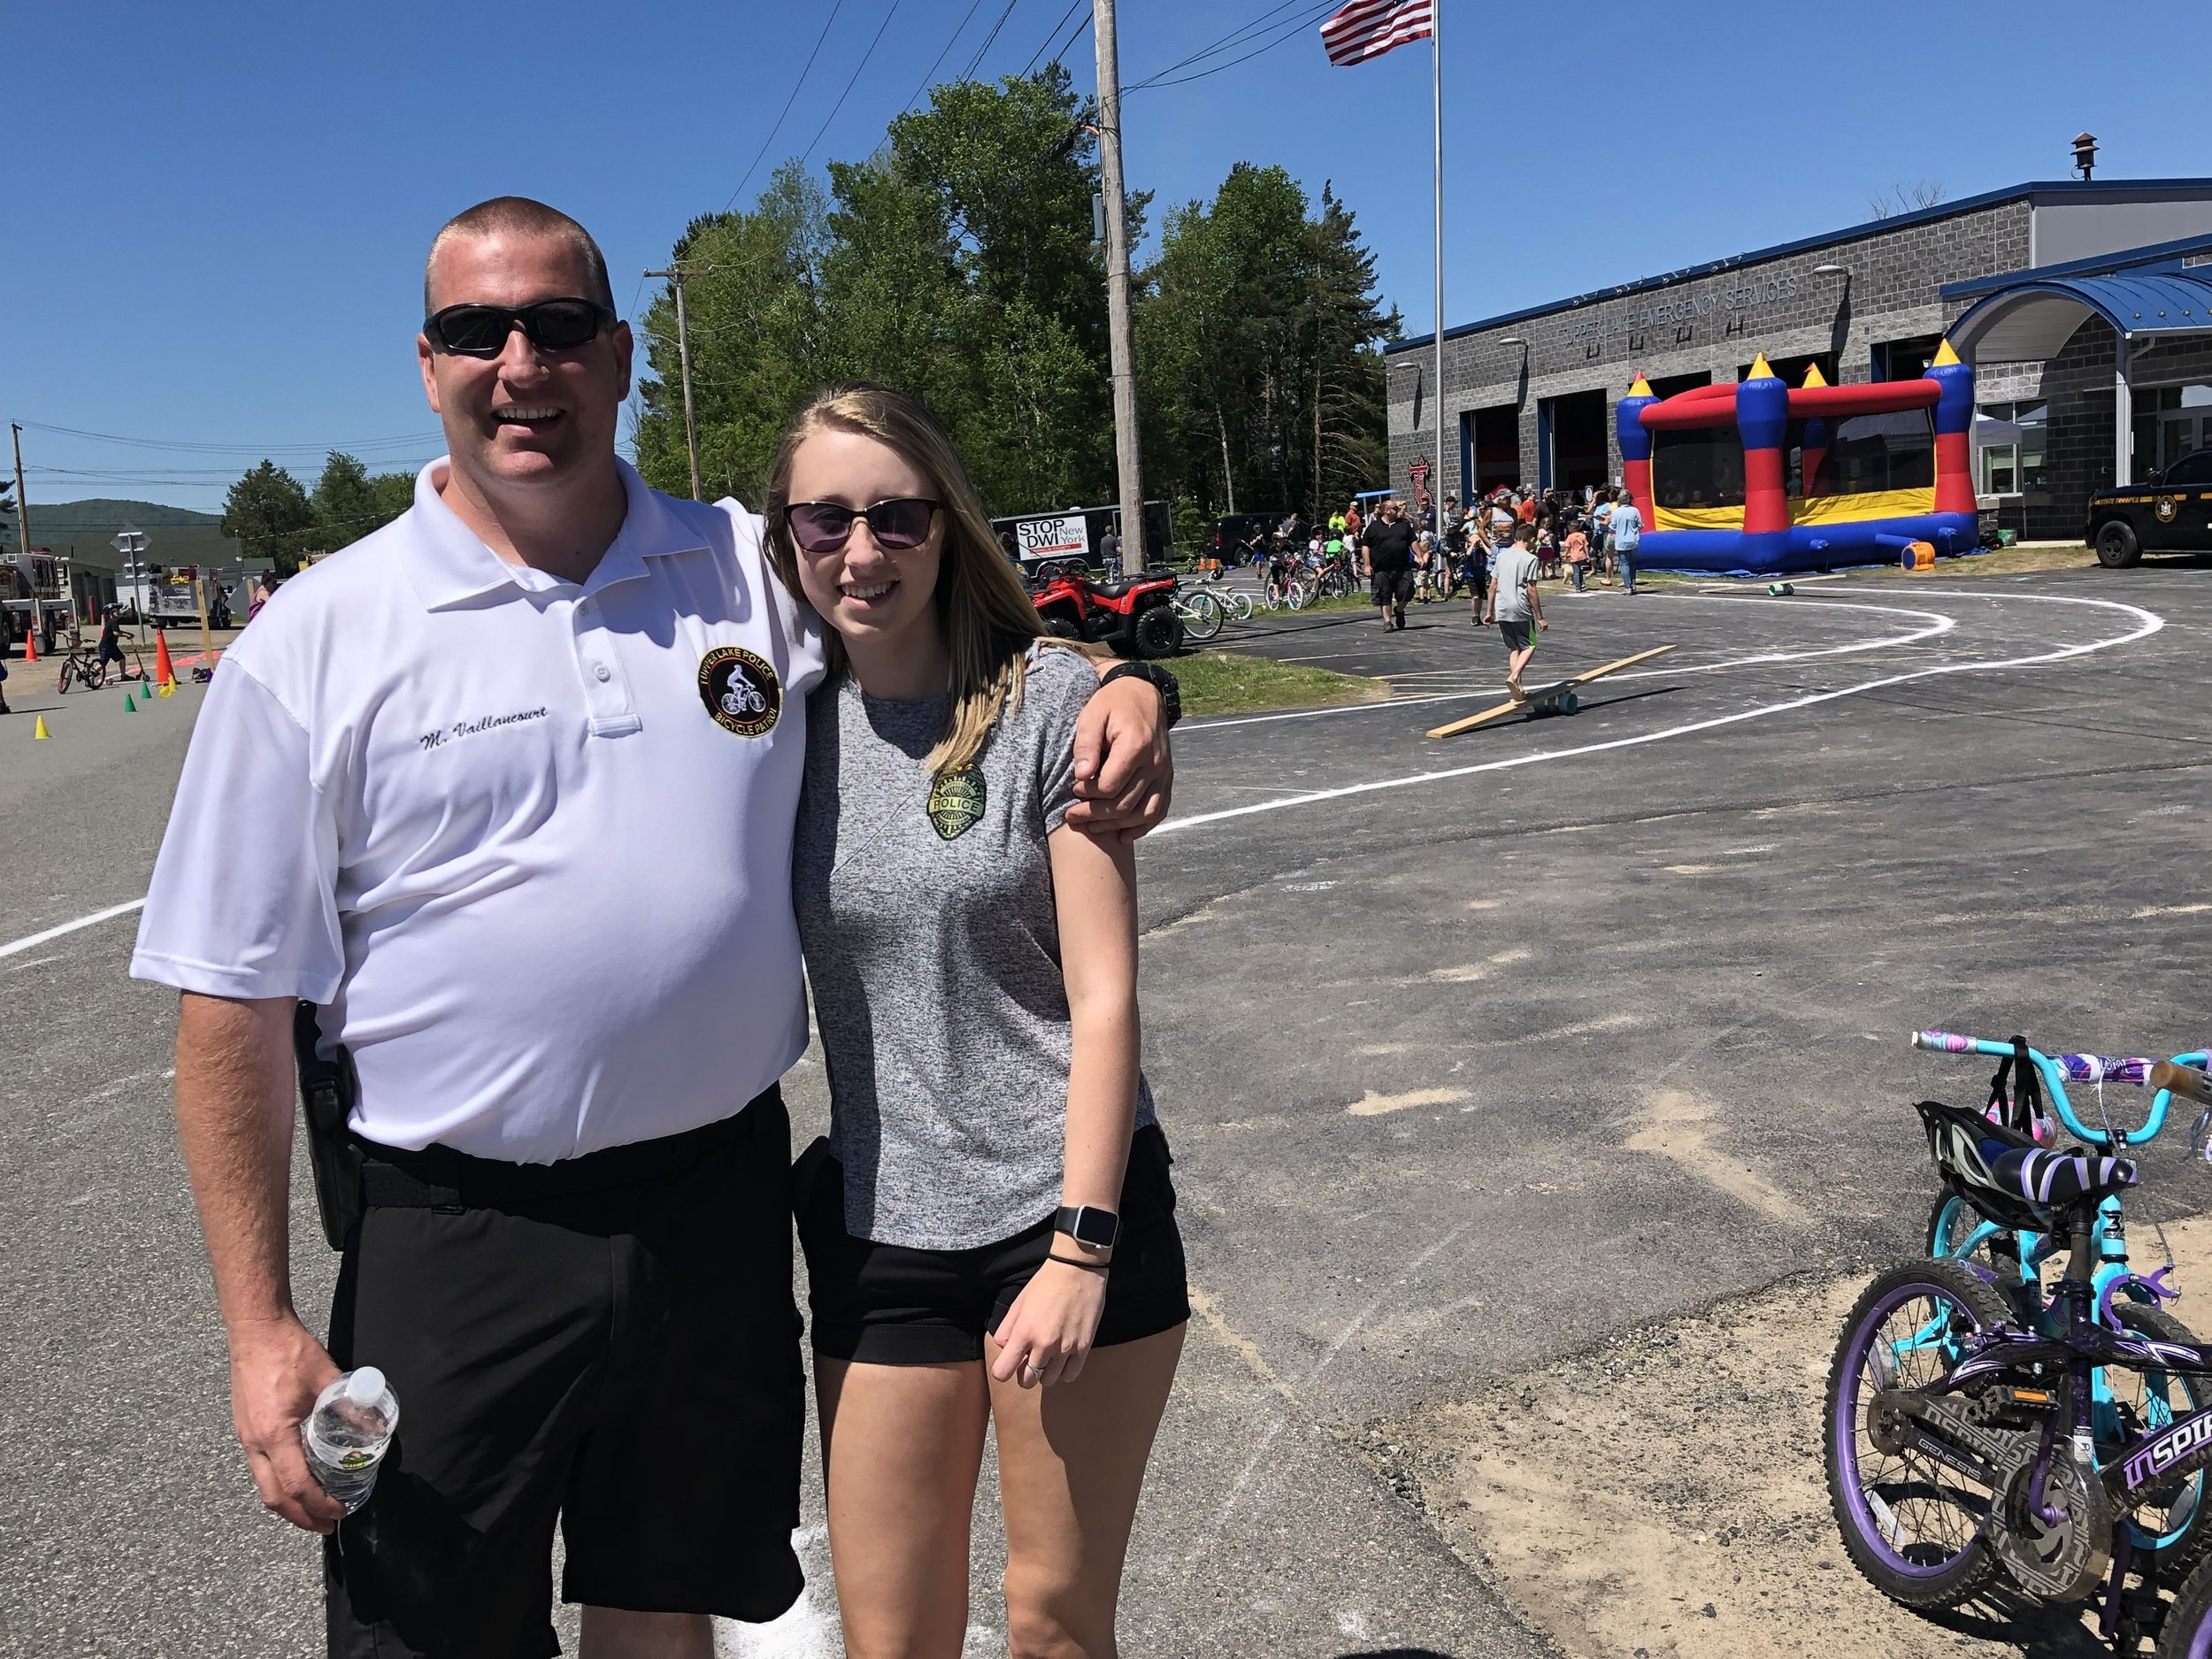 The man who has been the driving force for Tupper Lake's annual Bike Rodeo since 2008, Officer Michael Vaillancourt, was extremely pleased with the great weather Saturday which featured cloudless skies and warm temperatures. Some of Mike's events in the past have met with rain and cool weather, but like the circus, the rodeo always goes on. When things have been really damp in recent years, the event has been moved inside the fire station on Santa Clara Ave.  He poses above half way through the multi-faceted event with high school volunteer, Samantha Higgins, who is in tenth grade. Samantha also helped last year.  Mike said that day he figures total attendance would top 700 that day, when all riders and their family members were figured into the mix.  He said the 60-foot long inflatable obstacle course was a big hit with the kids this year.  New this year too was the Franklin County Sheriff's Department new high-axle transport vehicle, which came from the U.S. military and which will be used in flooding situations, where raging and deep water has to be crossed.